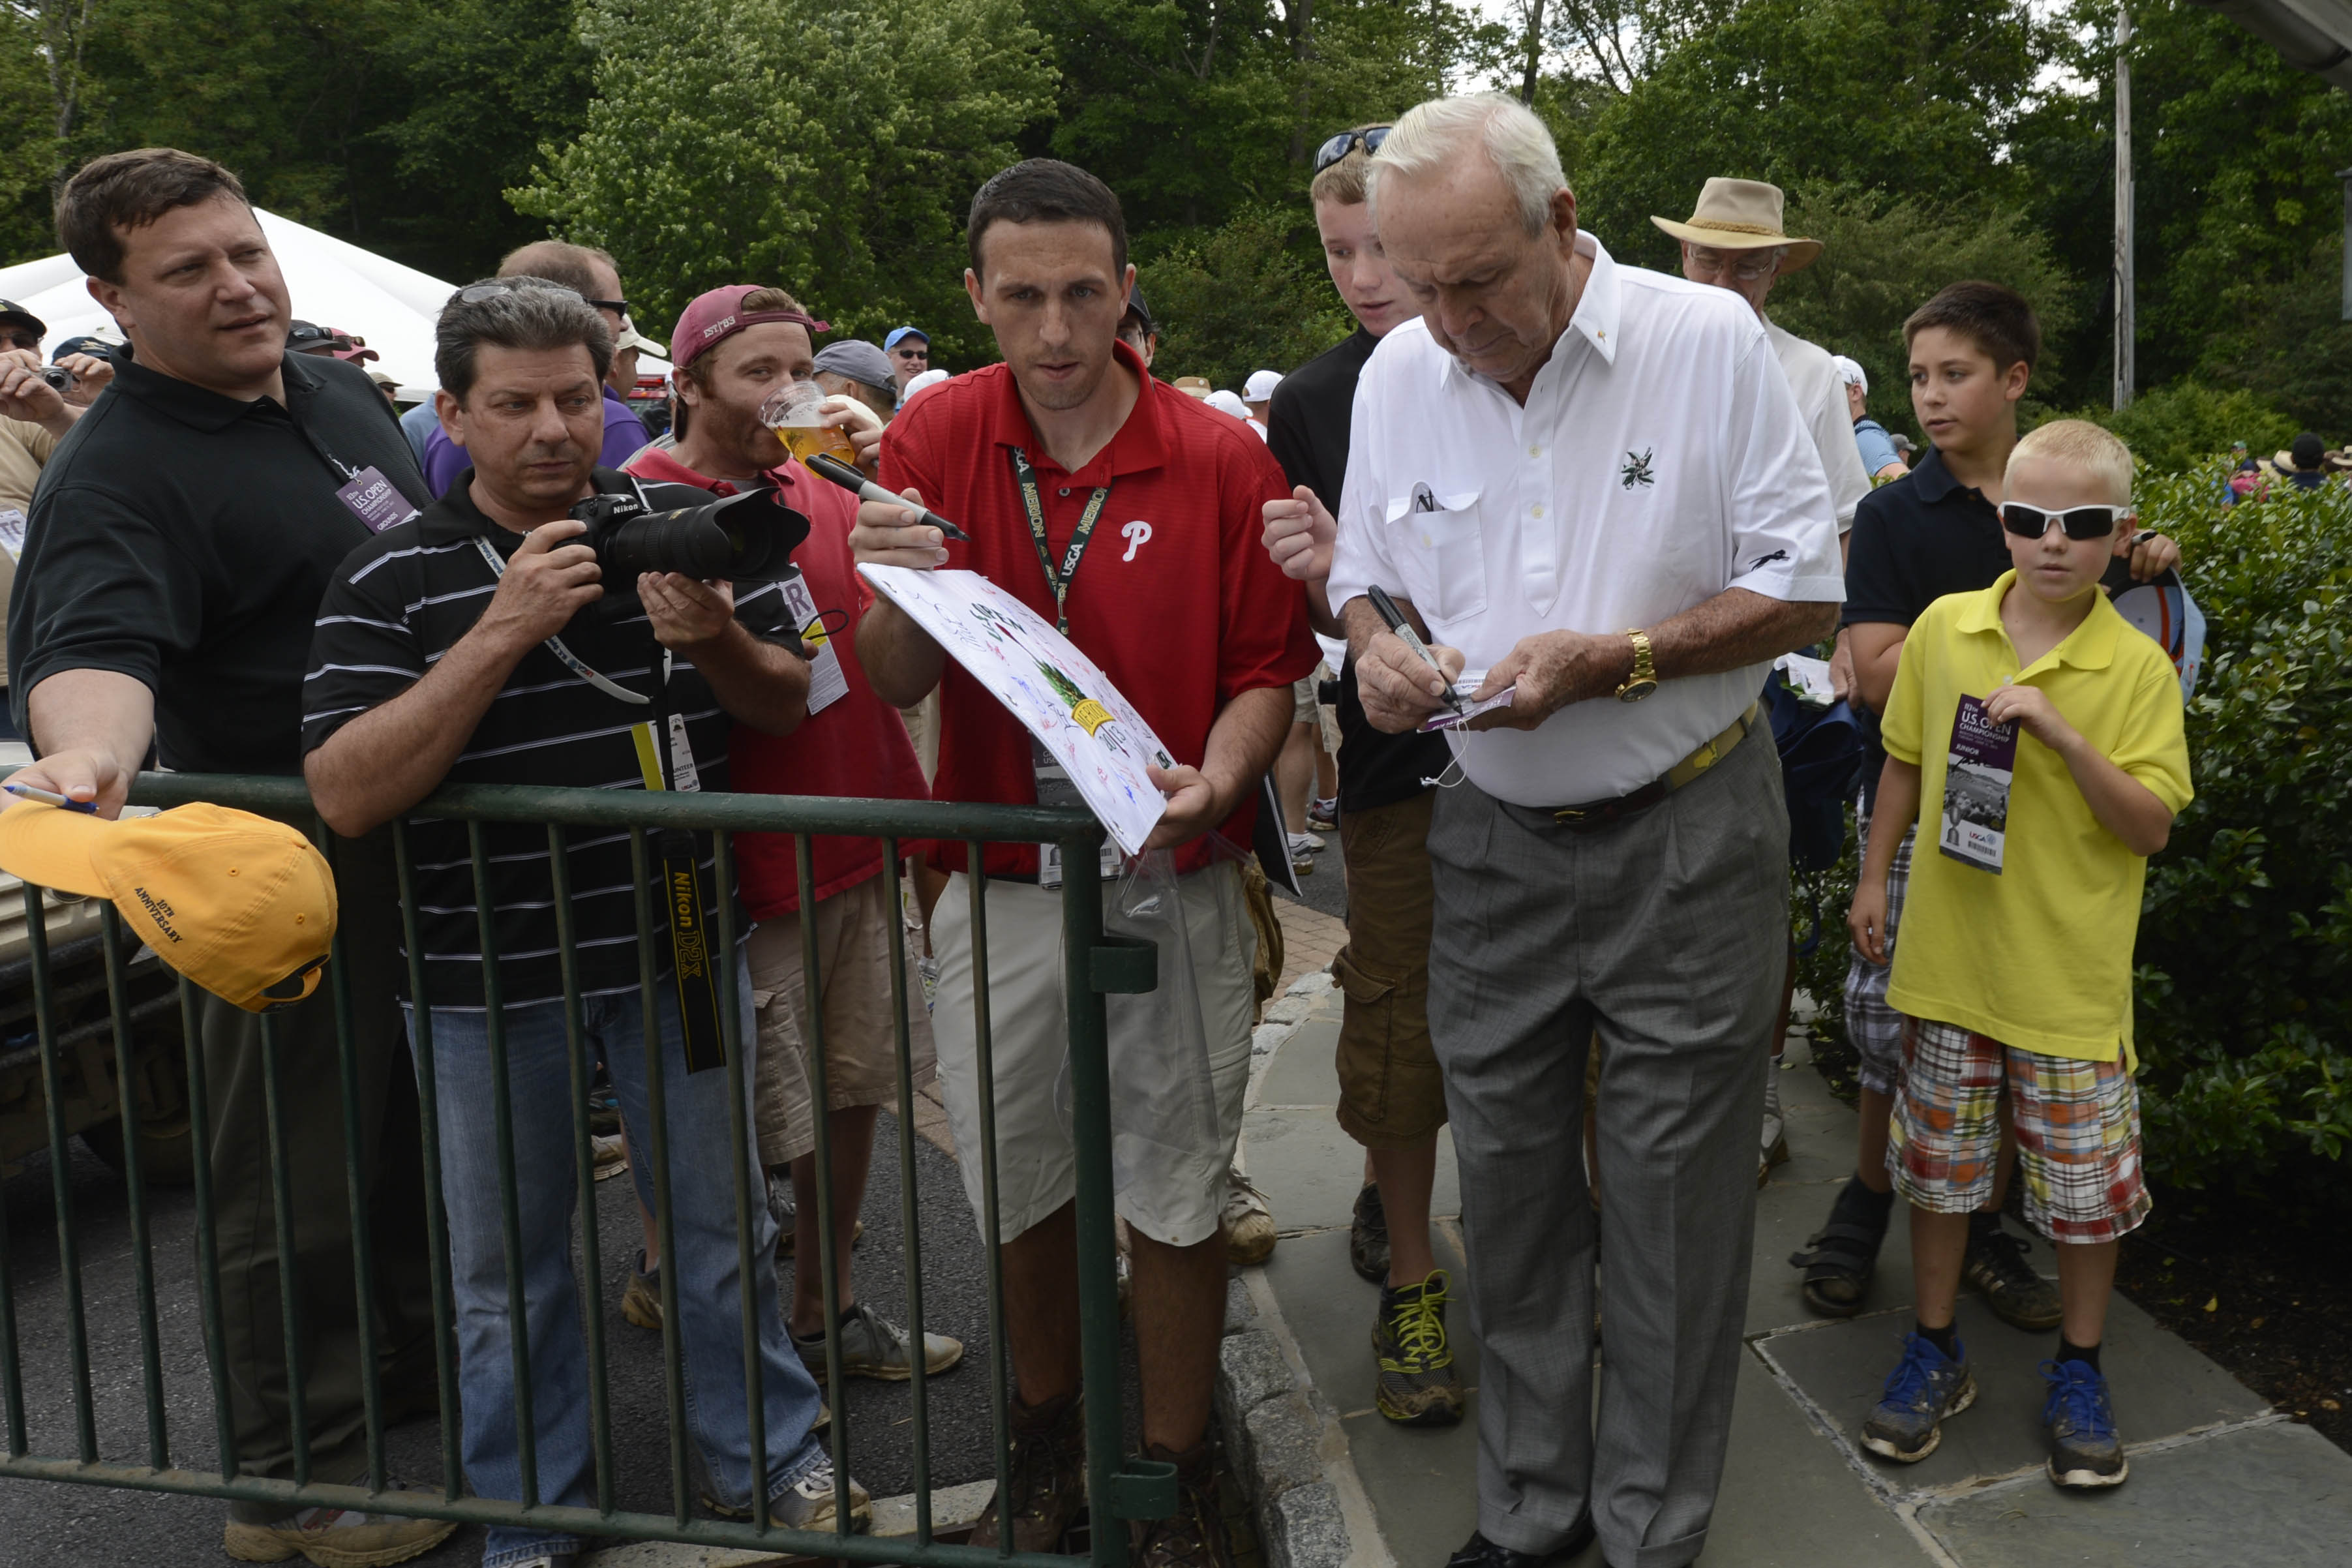 Jun 11, 2013; Ardmore, PA, USA; Arnold Palmer signs autographs for fans during the practice round of the 113th U.S. Open golf tournament at Merion Golf Club. (John David Mercer-USA TODAY Sports)